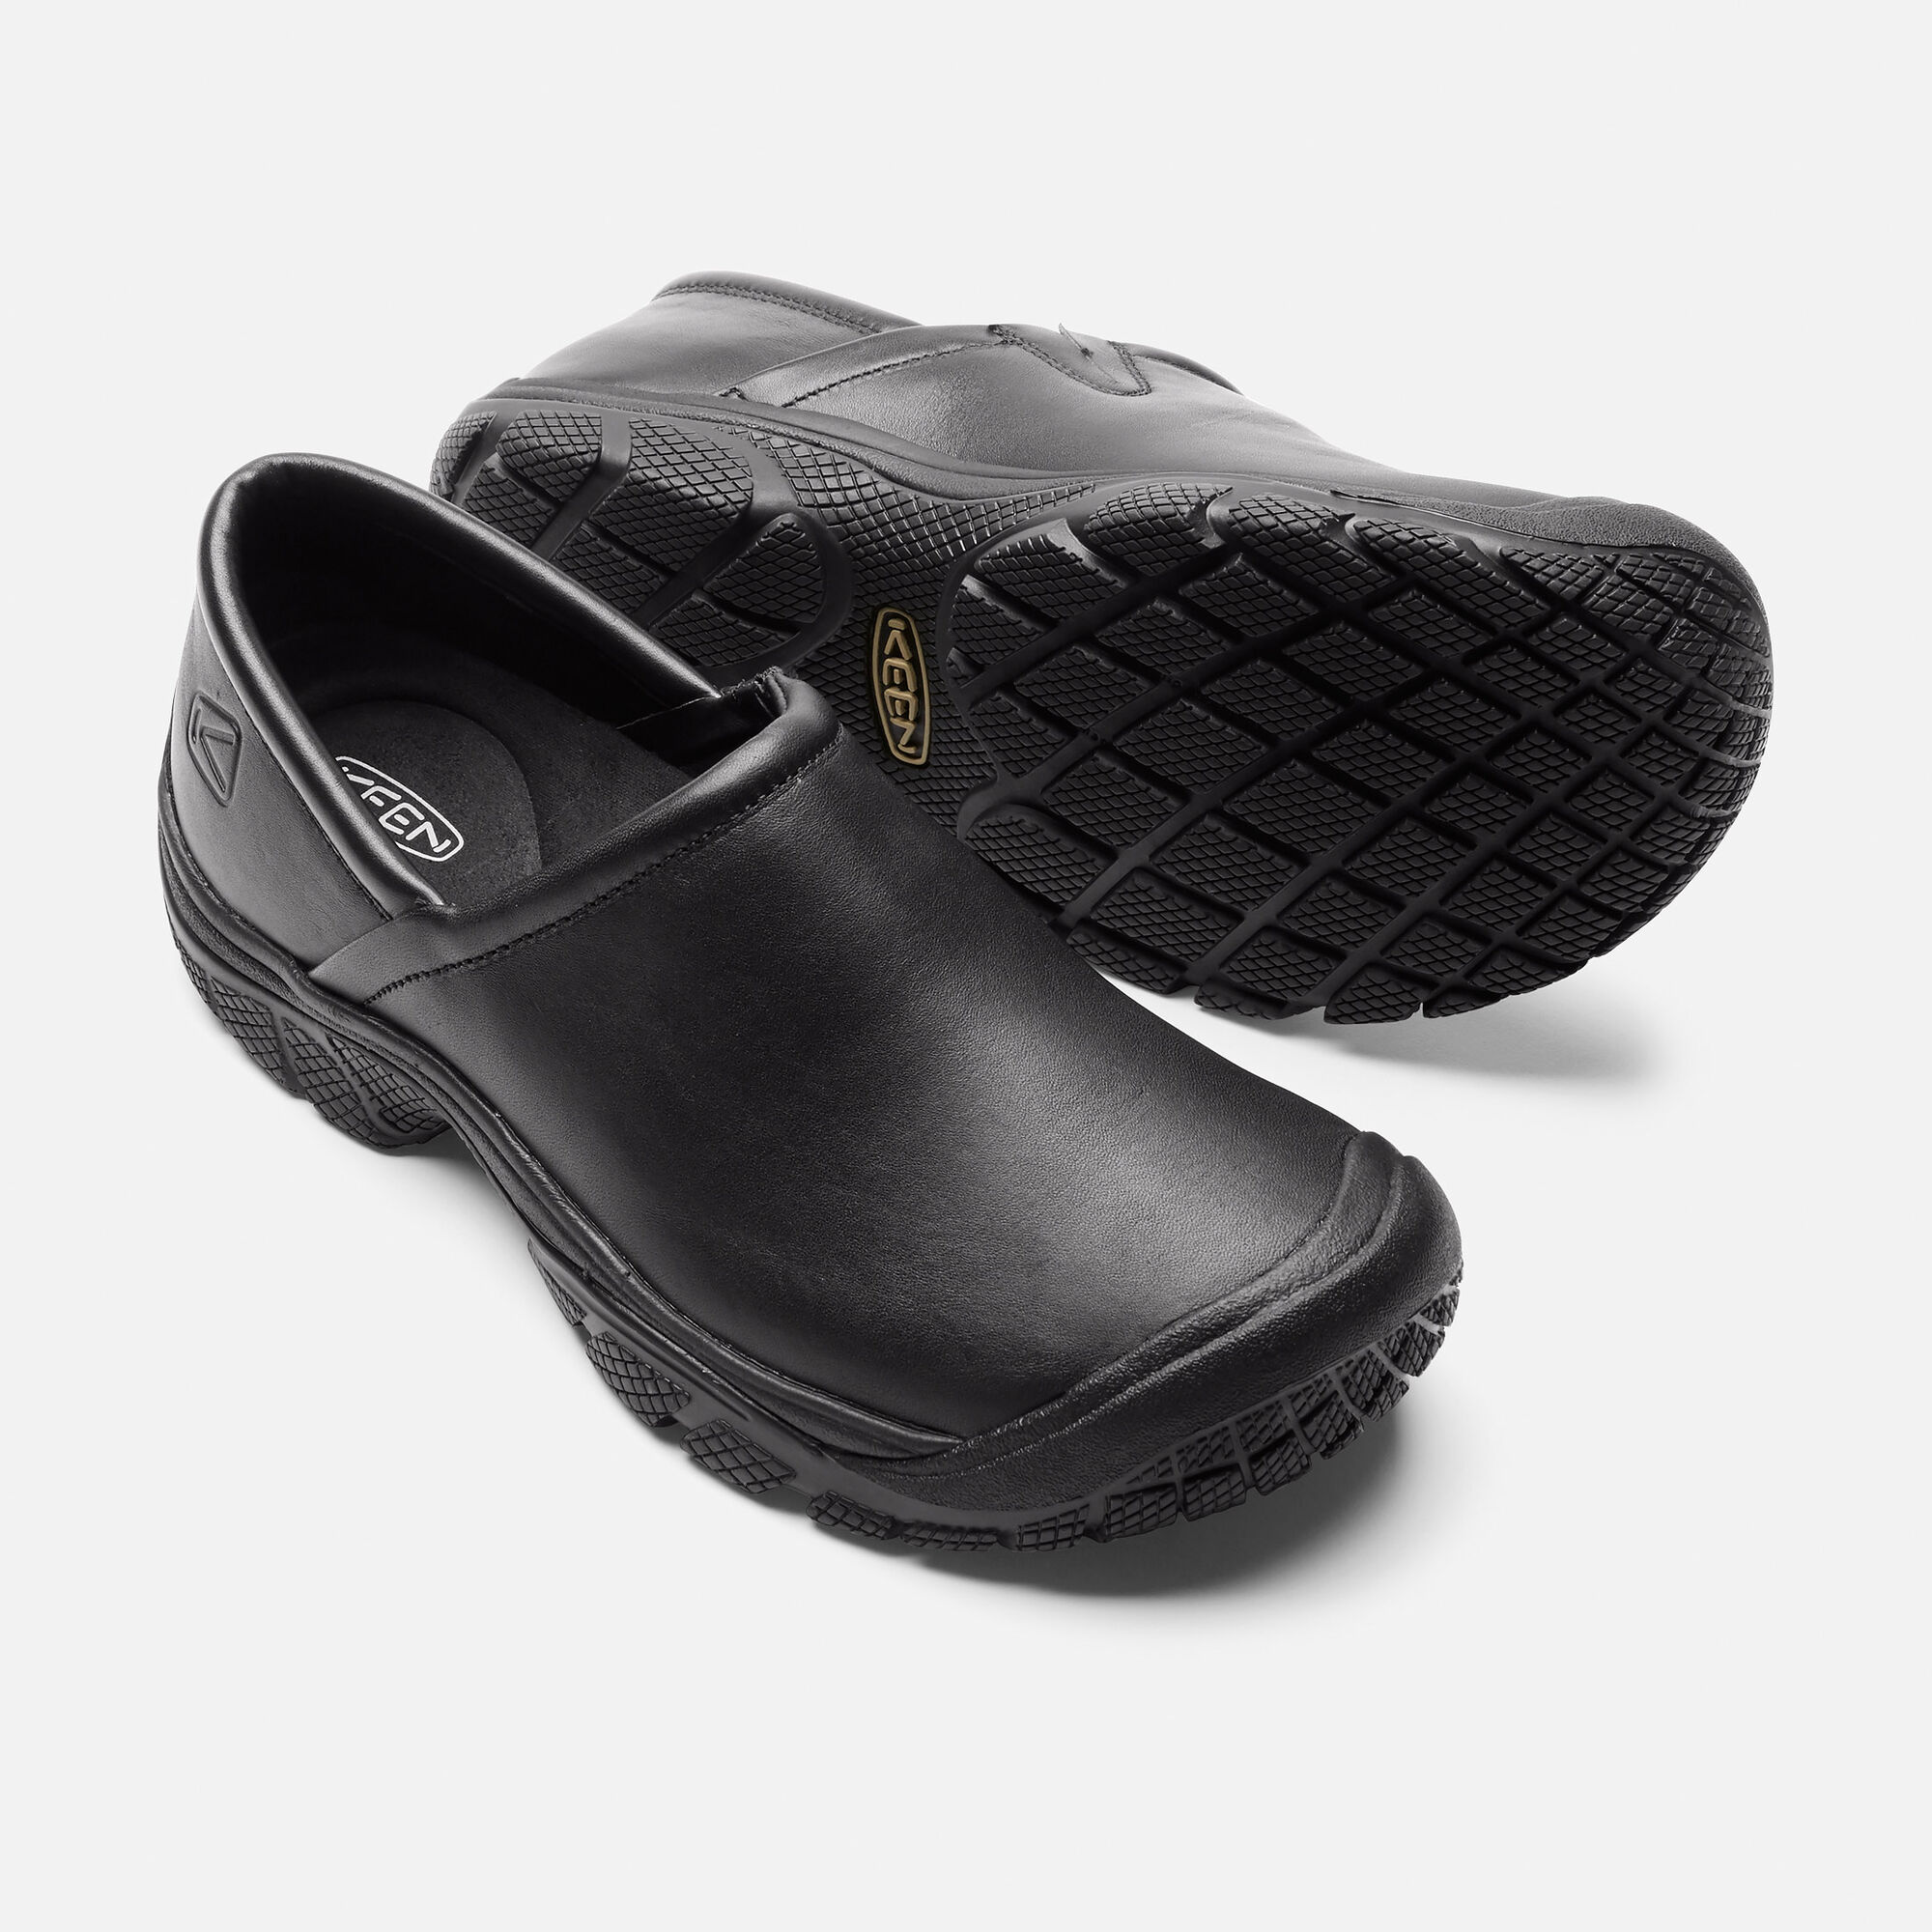 Keen Shoes Leather Care